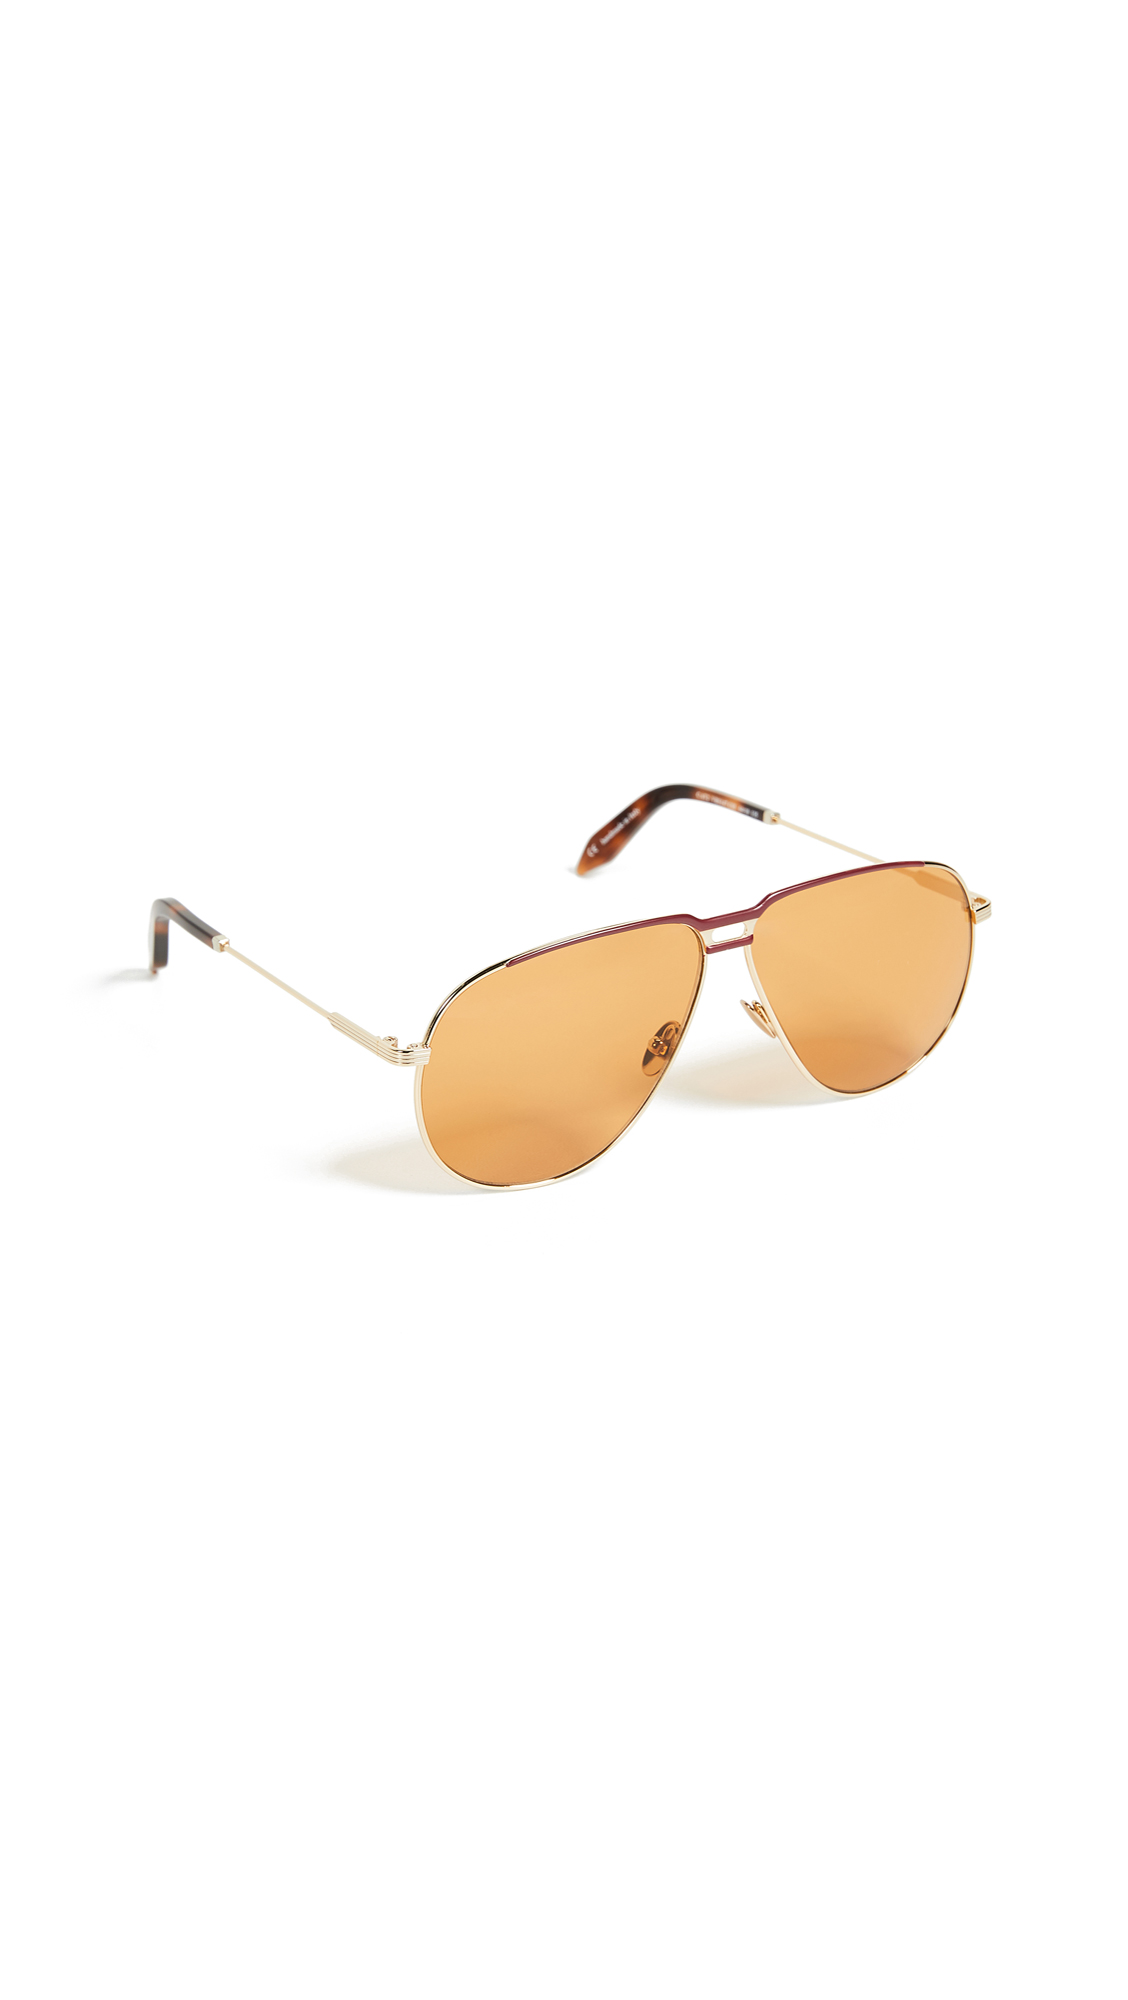 Victoria Beckham Jet Set Aviator Sunglasses - Caramel & Blonde Gold